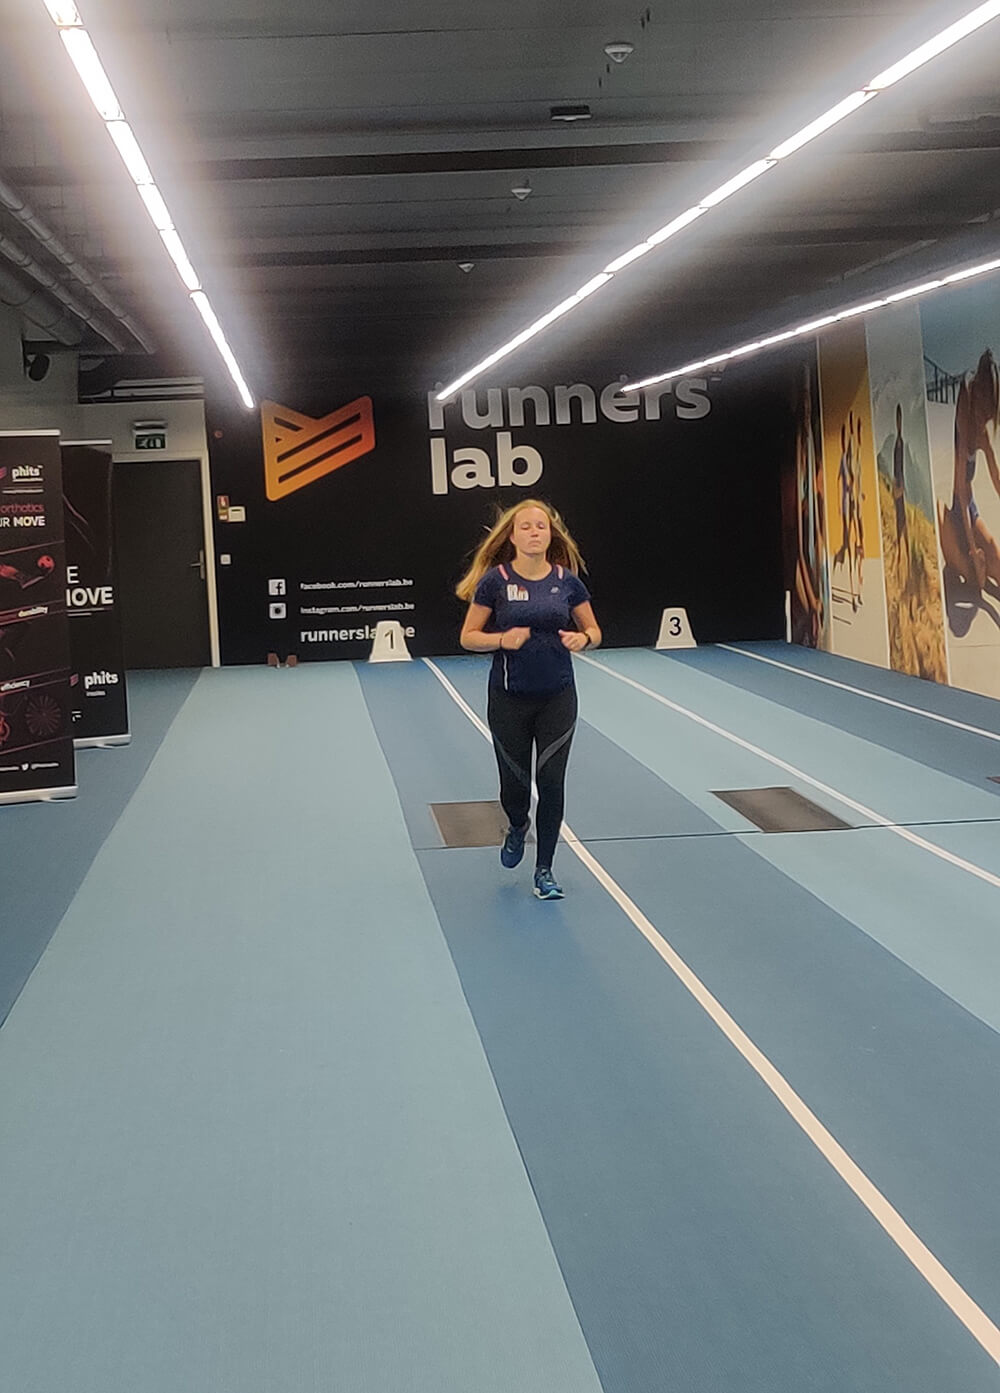 Runners'lab